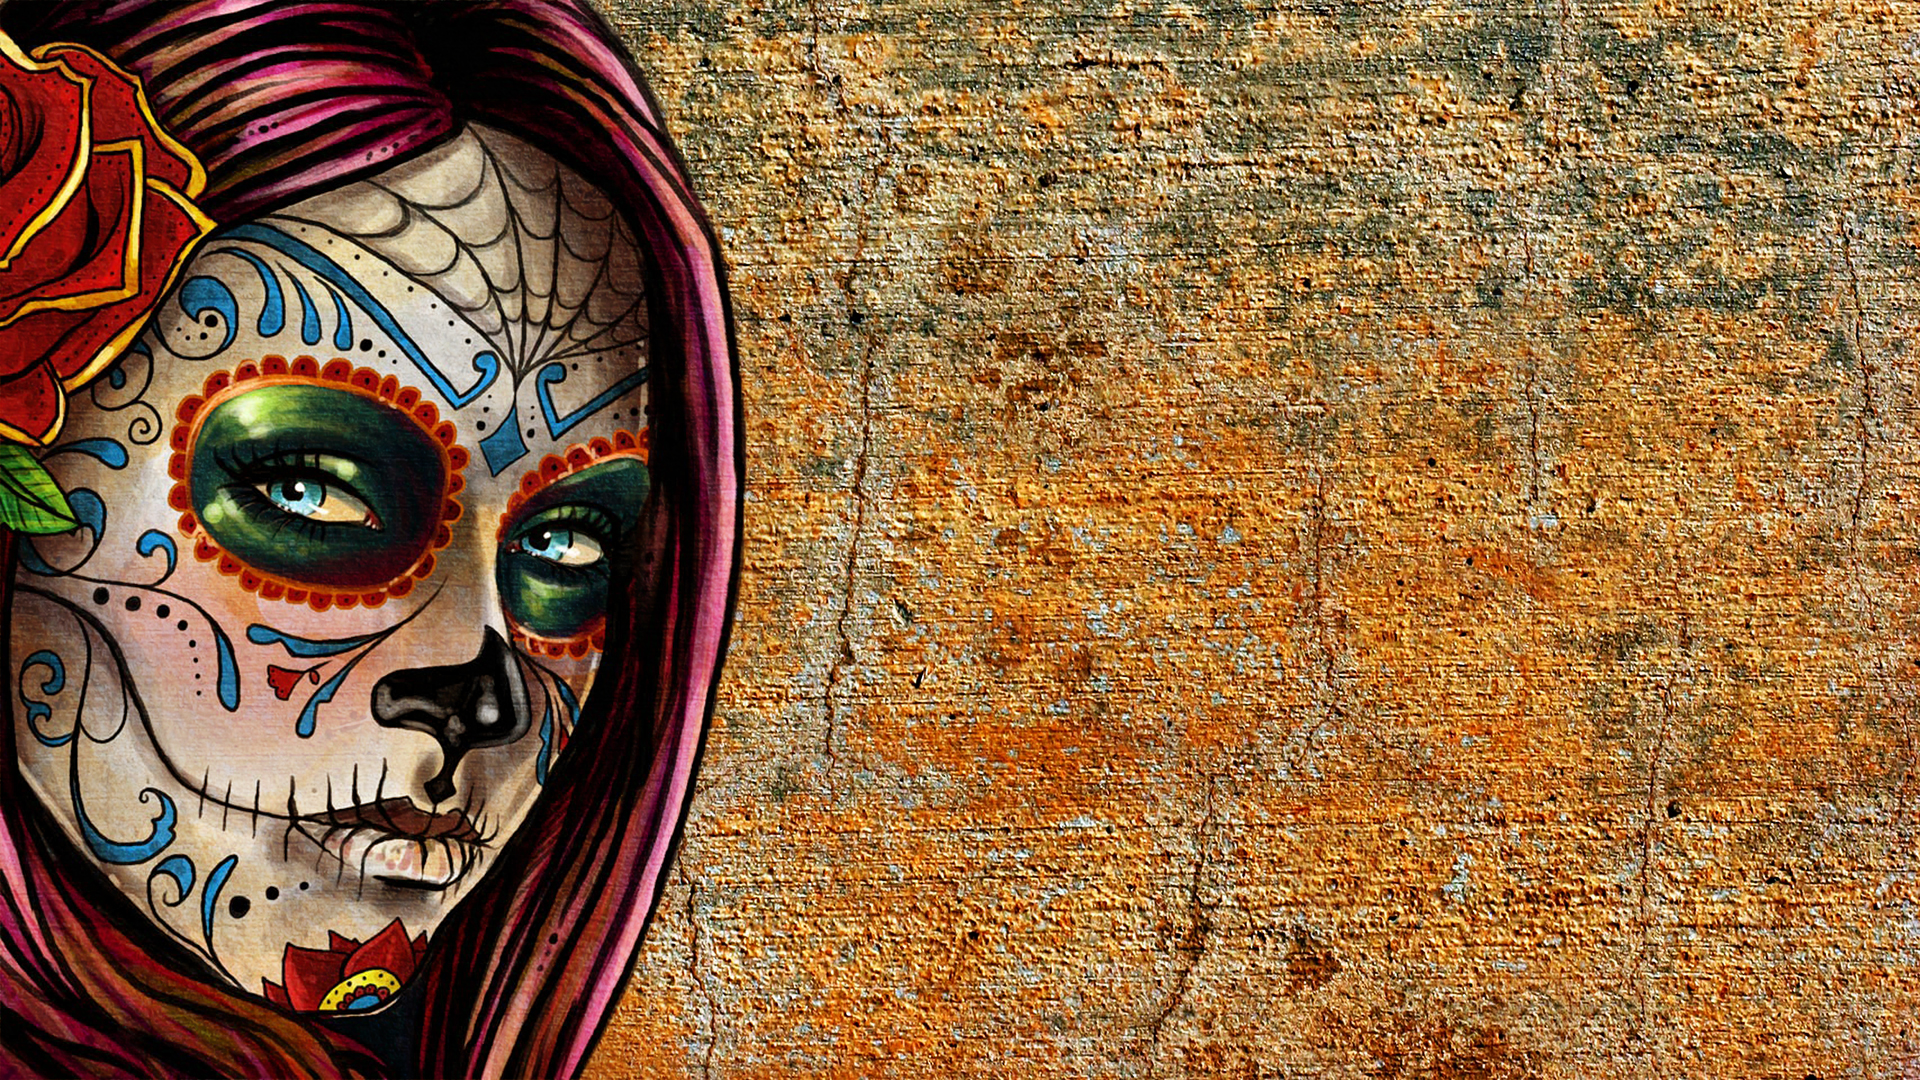 Sugar Skull Wallpaper for Pinterest TutXSLyN